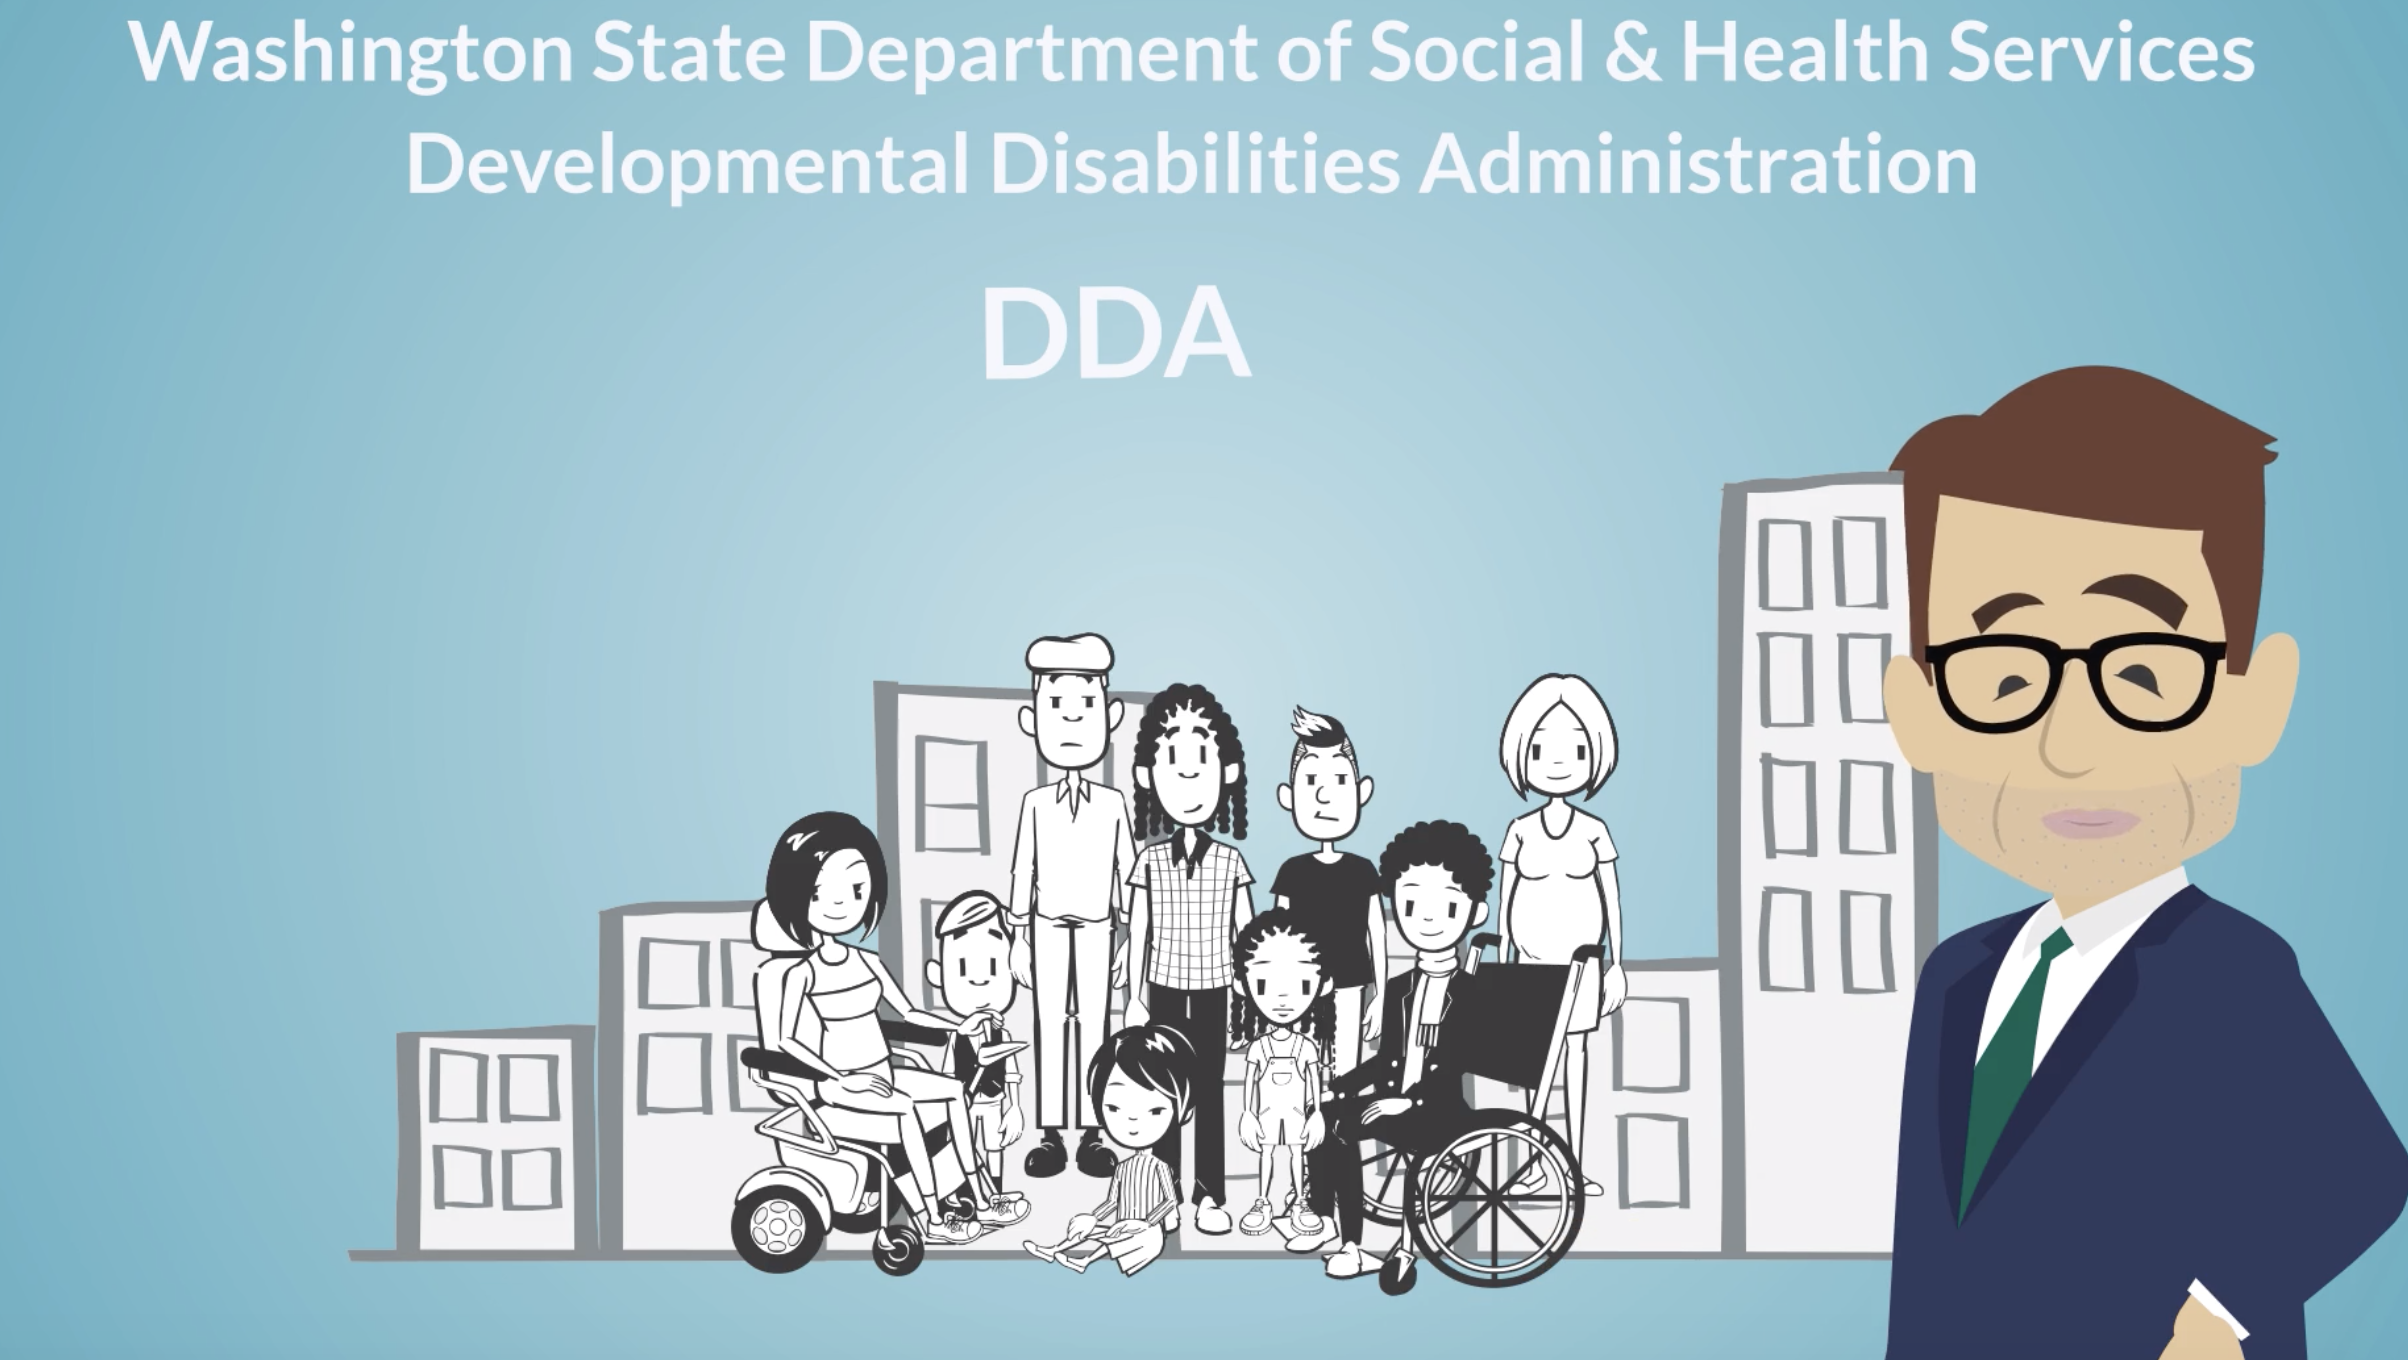 Title card for DSHS DDA video series, set against light blue background. Black and white line drawing of city scape with several people of different ages, abilities and races. Avatar image of Alex Koval, host of the series, in lower right.